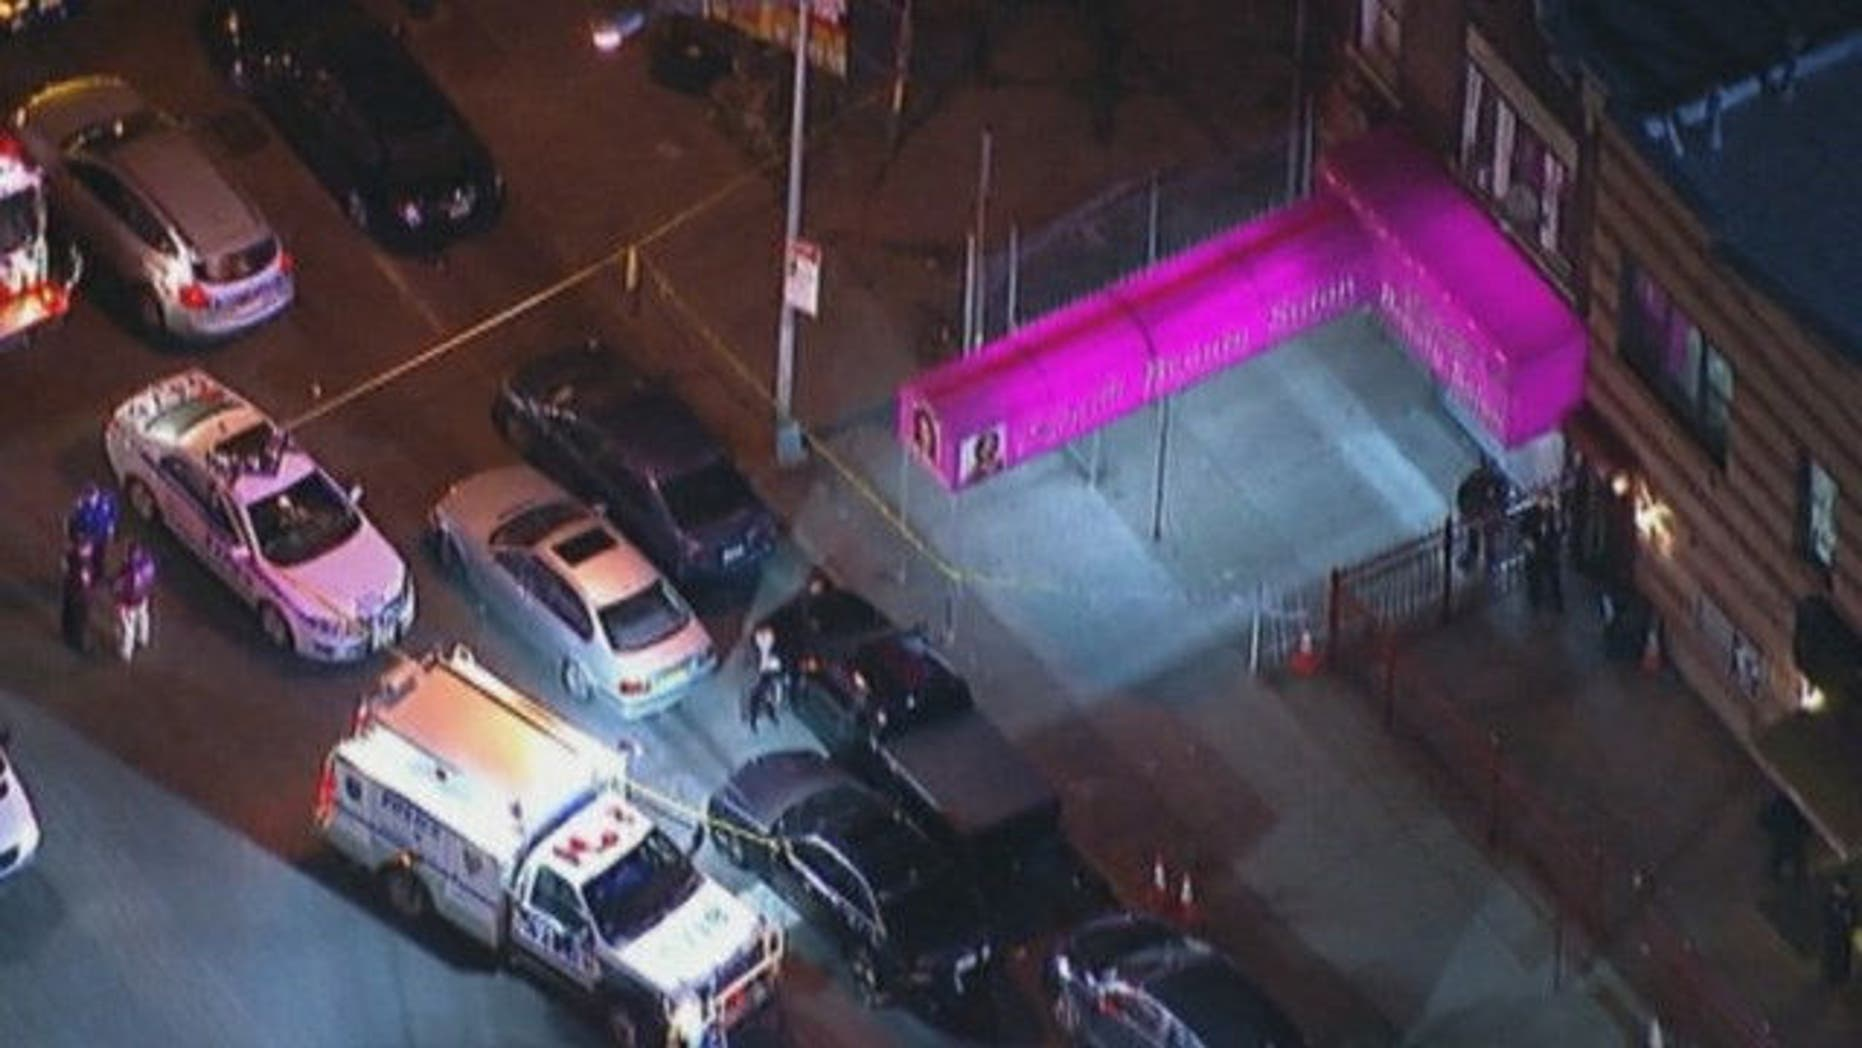 April 27, 2015: Emergency personnel respond to a shooting outside a Brooklyn, N.Y. church that killed at least 2 people and injured 4 others. (MyFoxNY.com)